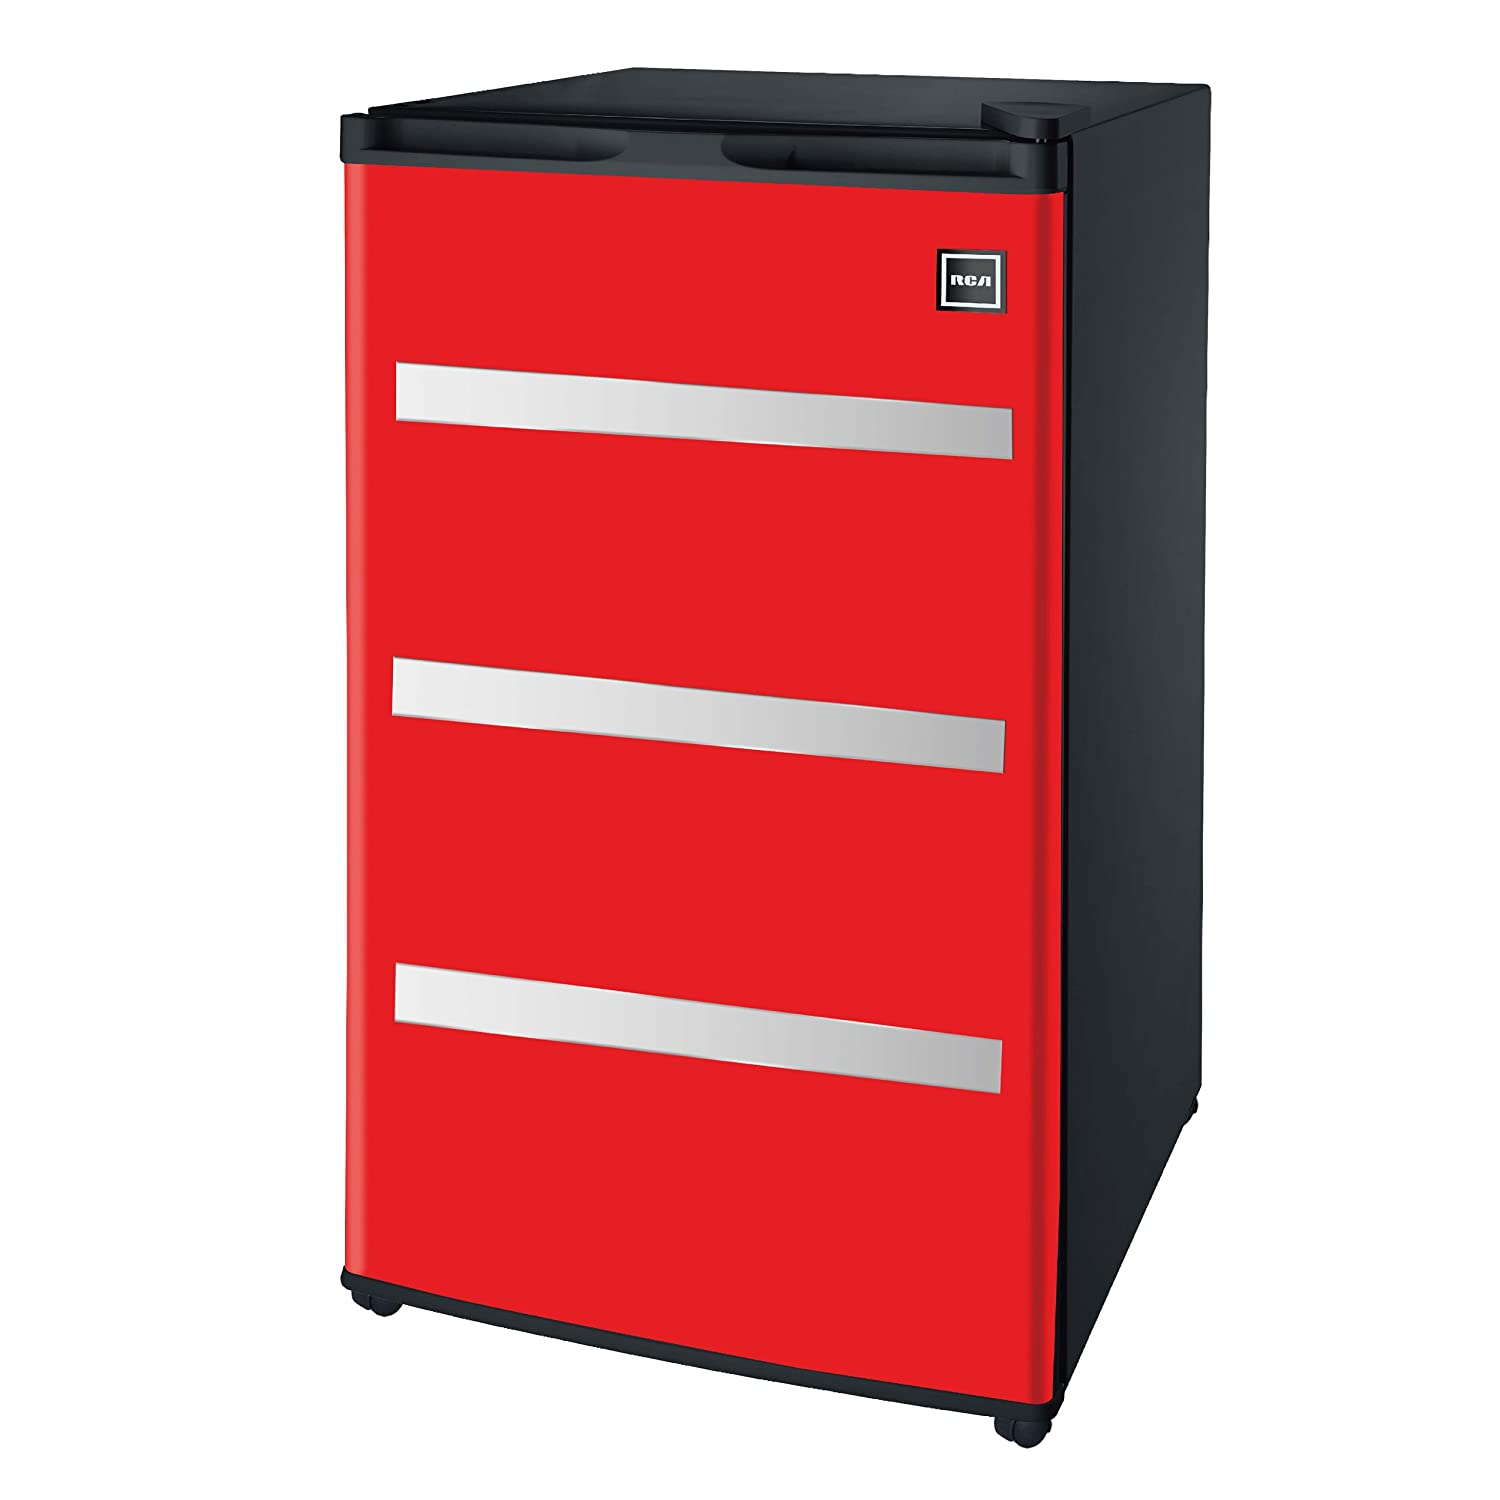 RFR329-Red Garage Fridge Tool Box, 3.2 Cubic Feet, Red